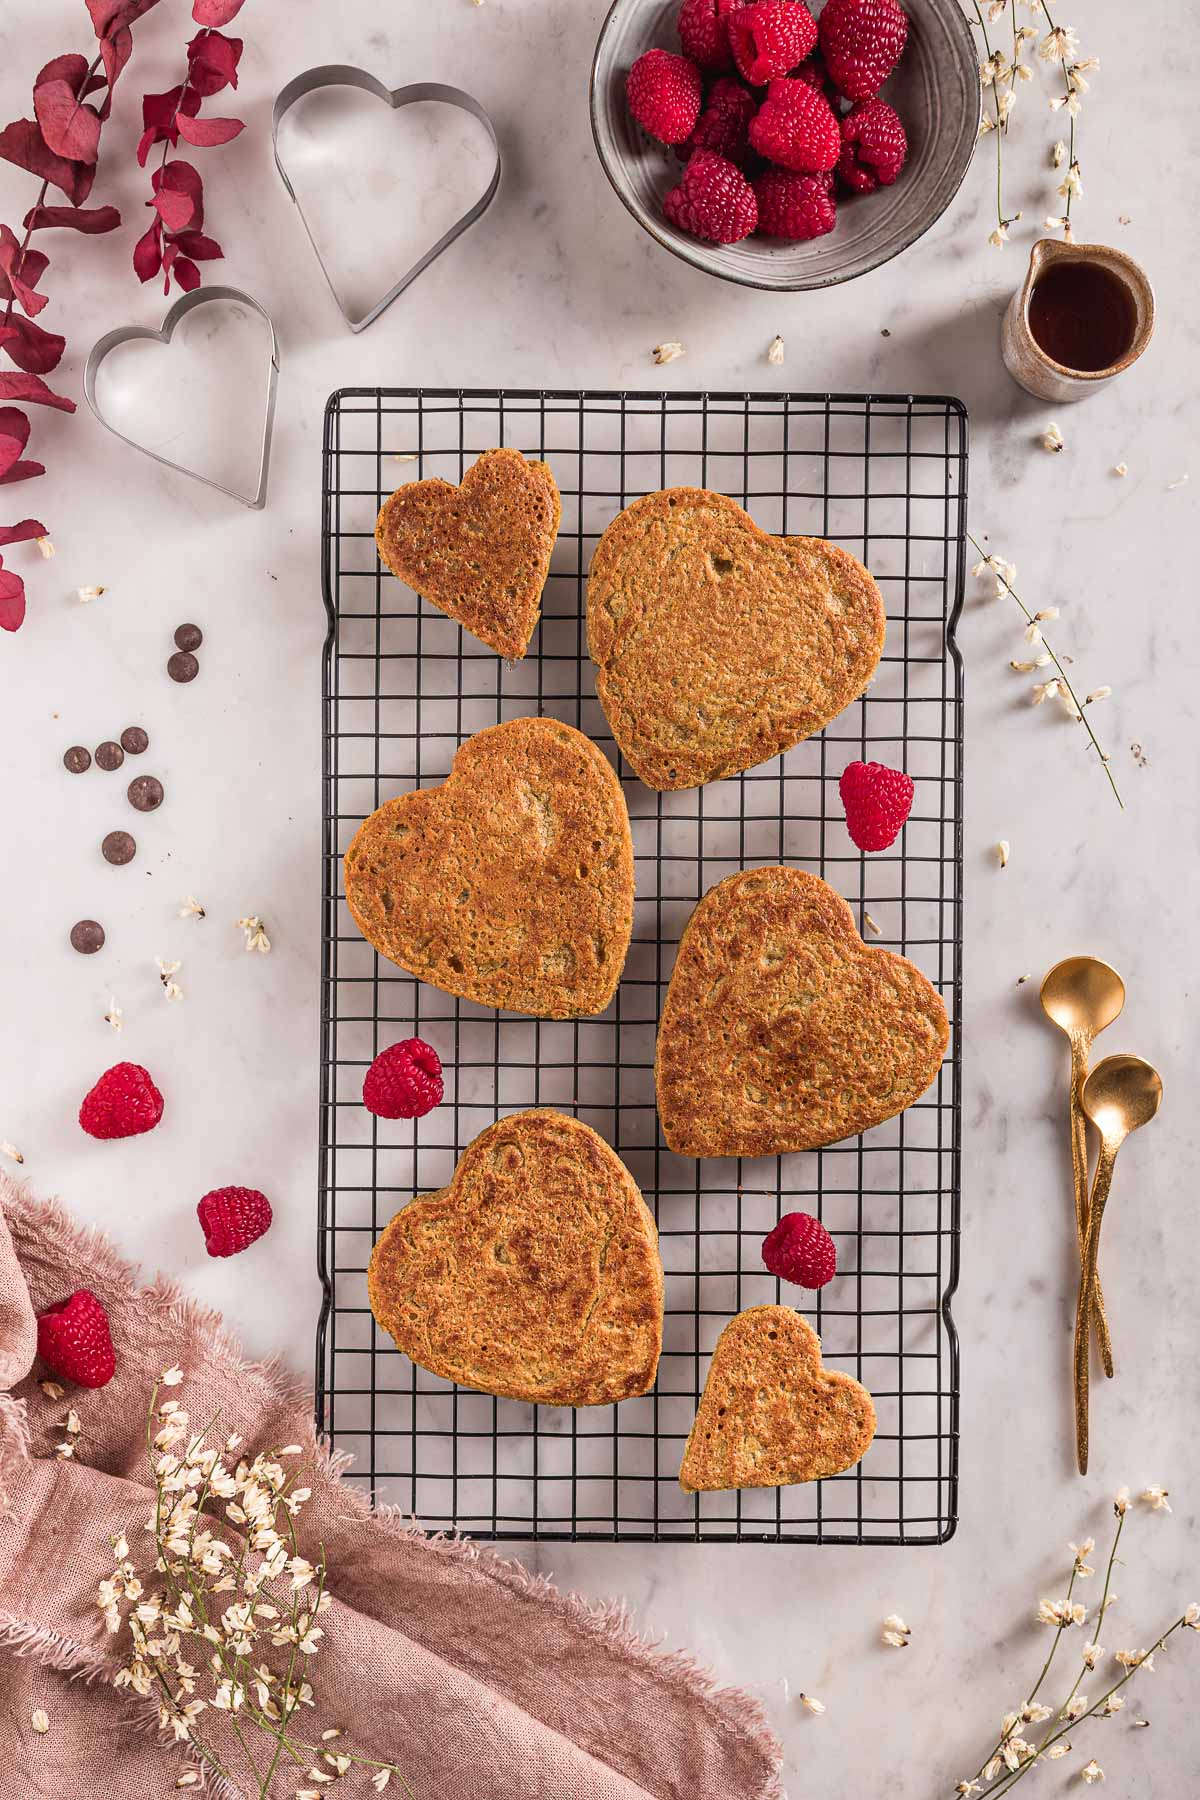 come fare i pancakes vegan senza glutine all'avena e cioccolato light senza frutta secca pancakes di San Valentino how to make blender gluten-free vegan oat pancakes nut-free